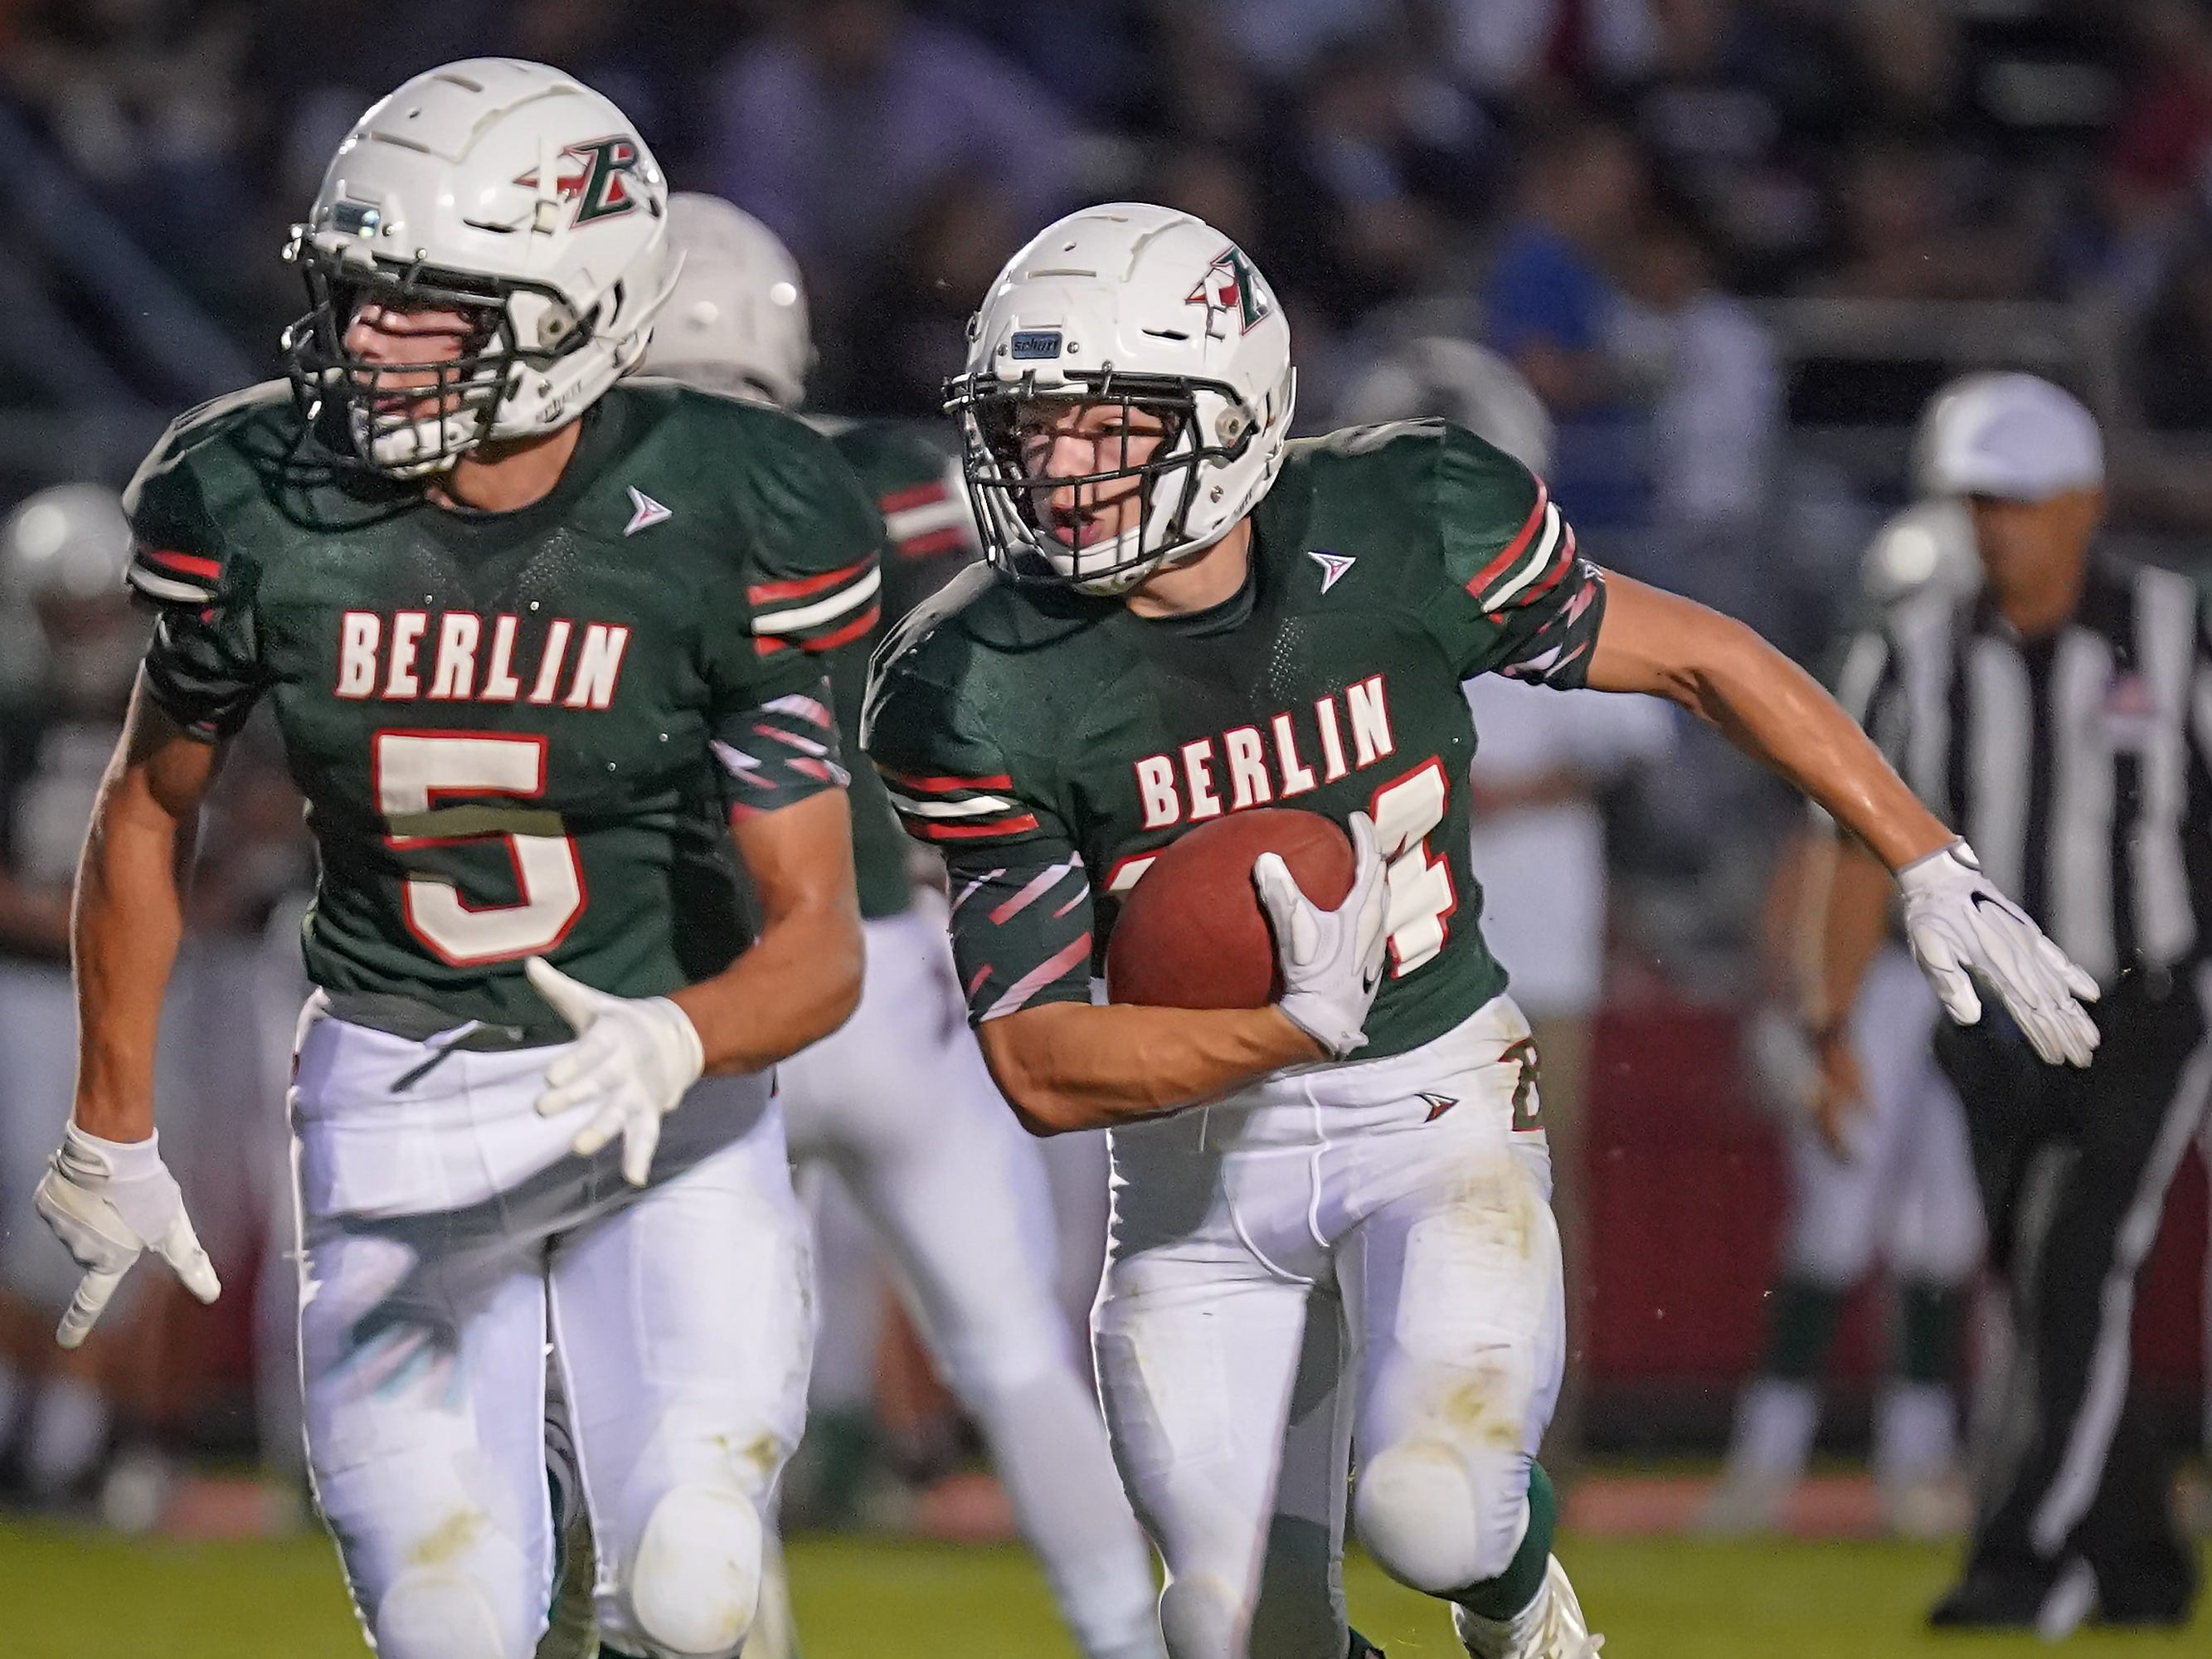 Alec Moriarty (5) of Berlin leads the blocking for Aidan Schilling (24). The Berlin Indians hosted the Winneconne Wolves in an East Central Conference matchup Friday evening, September 14, 2018.